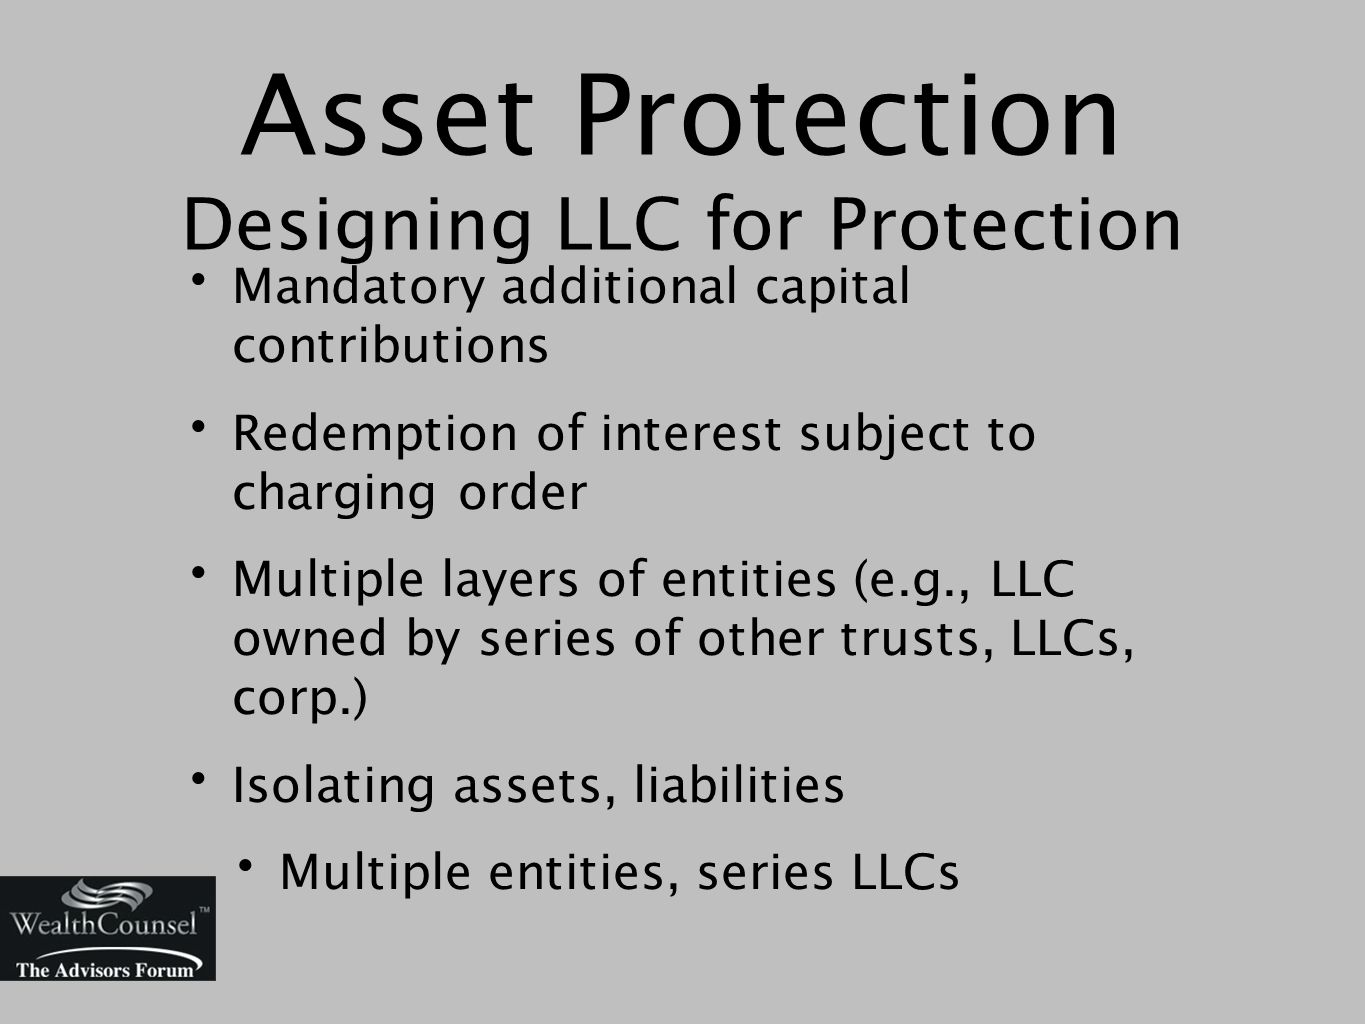 Asset Protection Designing LLC for Protection Mandatory additional capital contributions Redemption of interest subject to charging order Multiple layers of entities (e.g., LLC owned by series of other trusts, LLCs, corp.) Isolating assets, liabilities Multiple entities, series LLCs